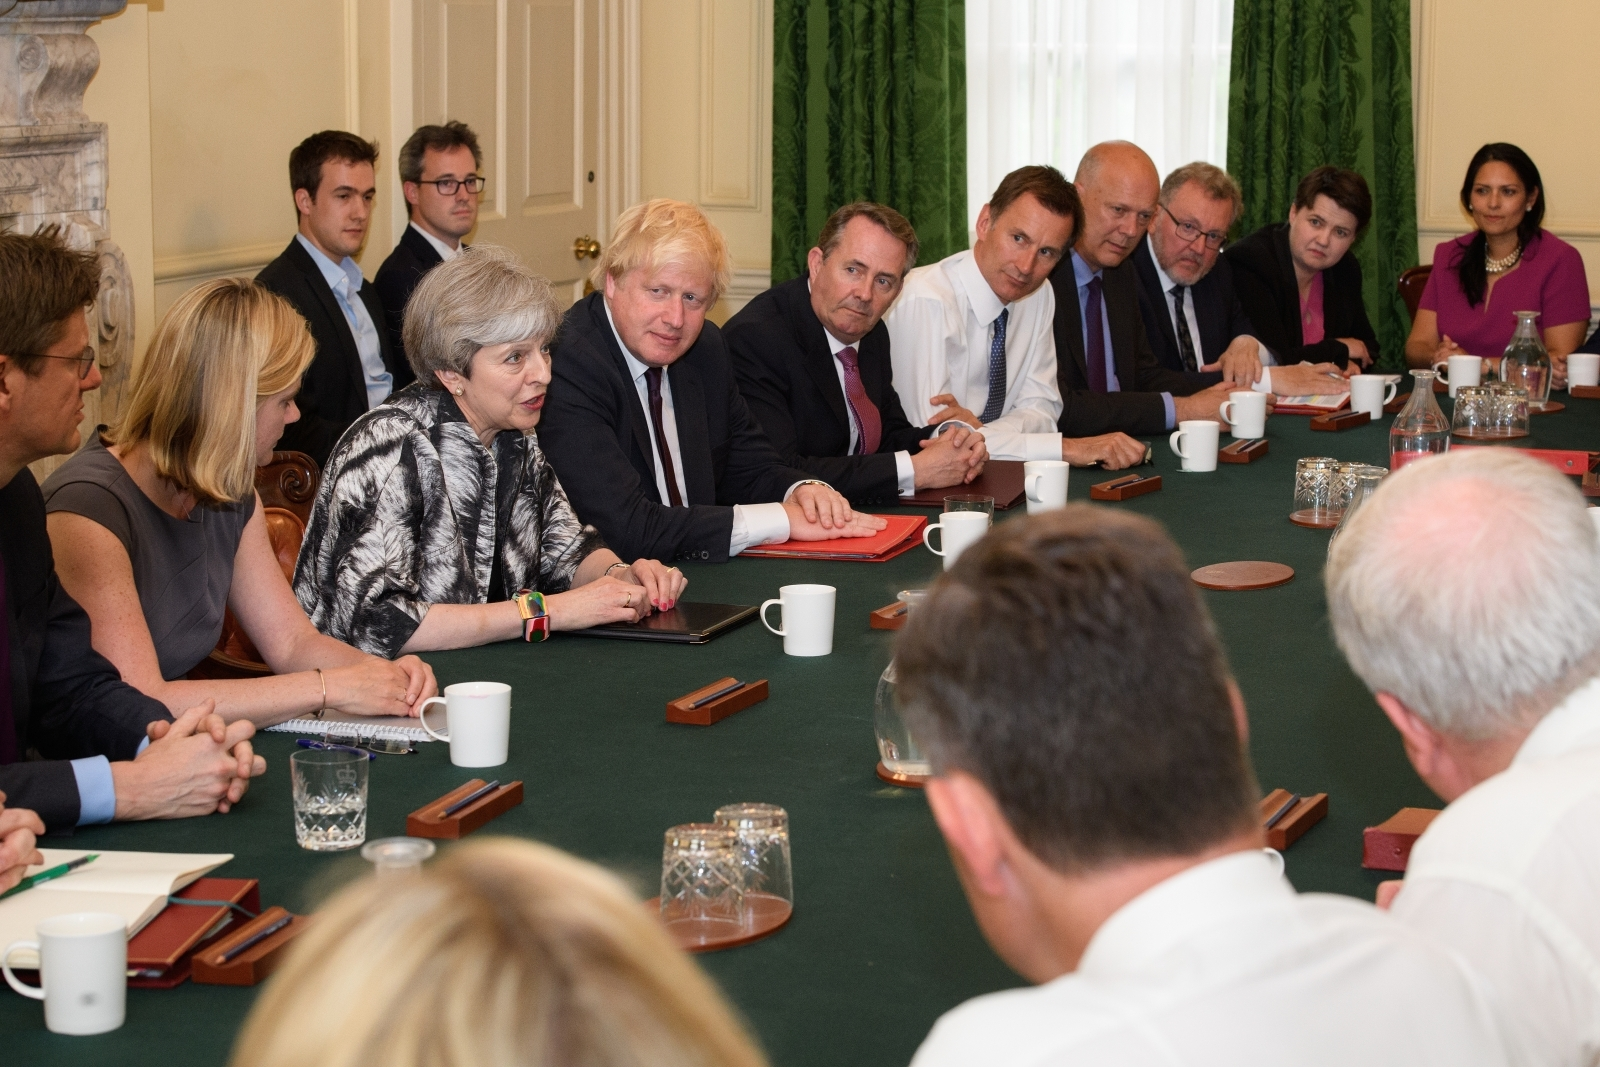 Theresa May and the cabinet